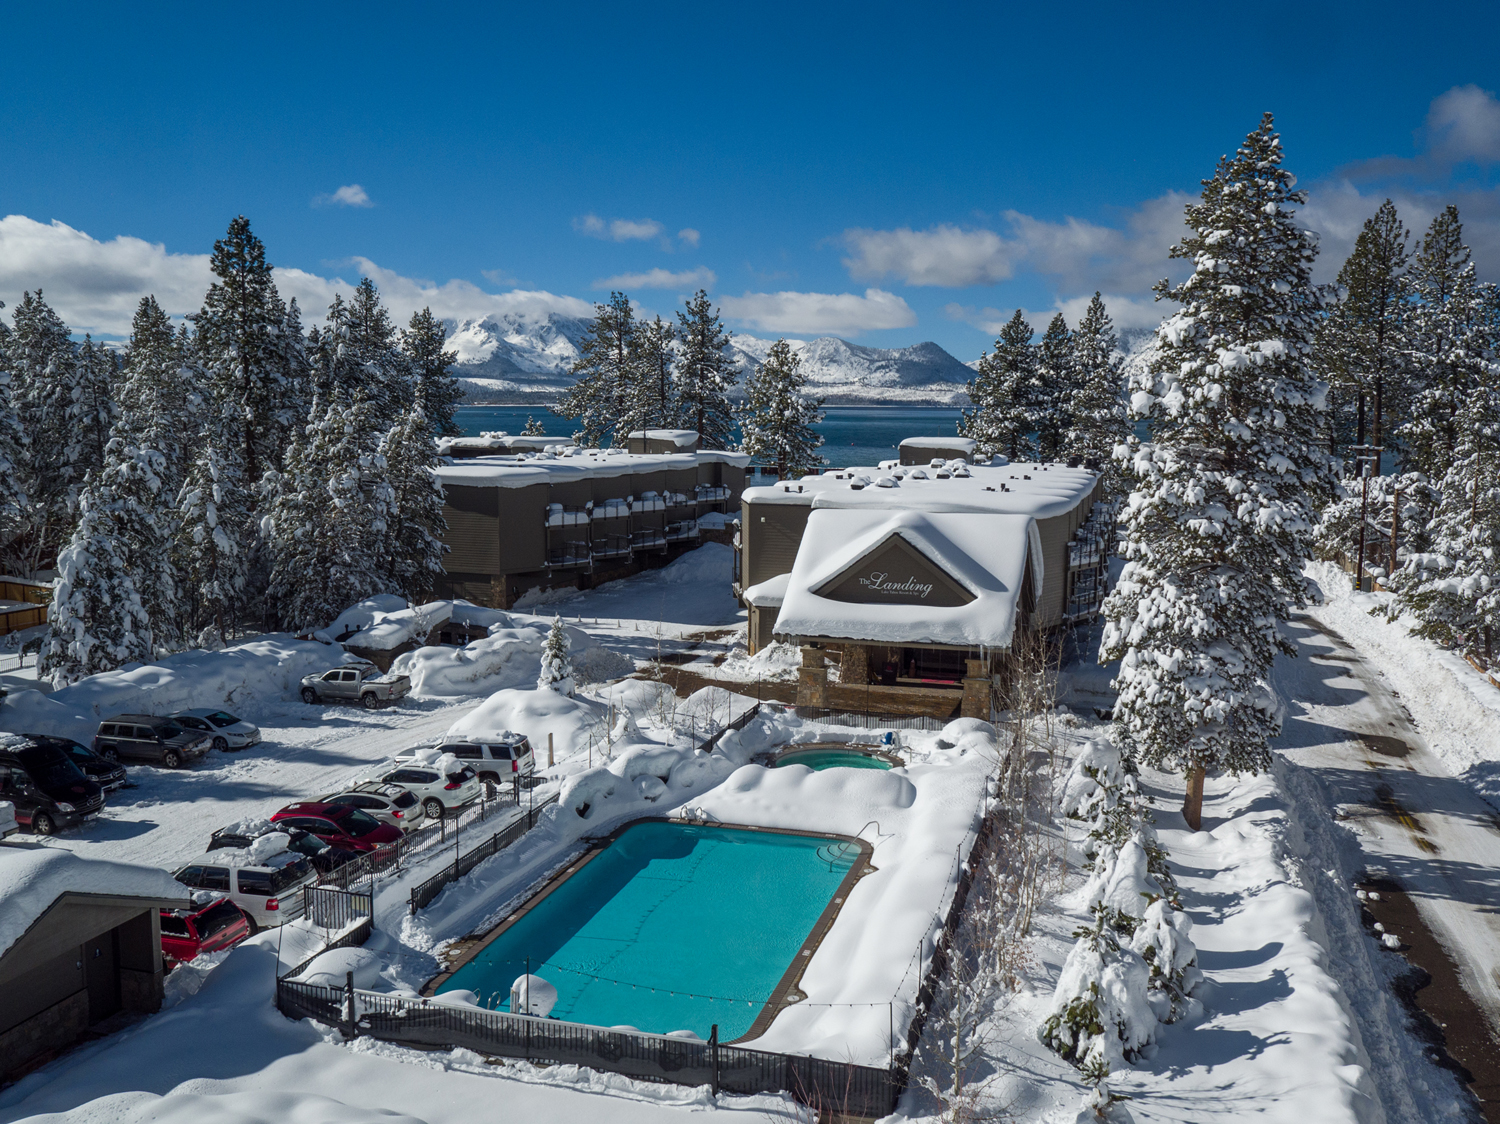 The Heavenly Gondola Offering Access To Mountain Resort S Remarkable Lake Tahoe Views And Varied Terrain Is Just Blocks From Landing Hotel Photo